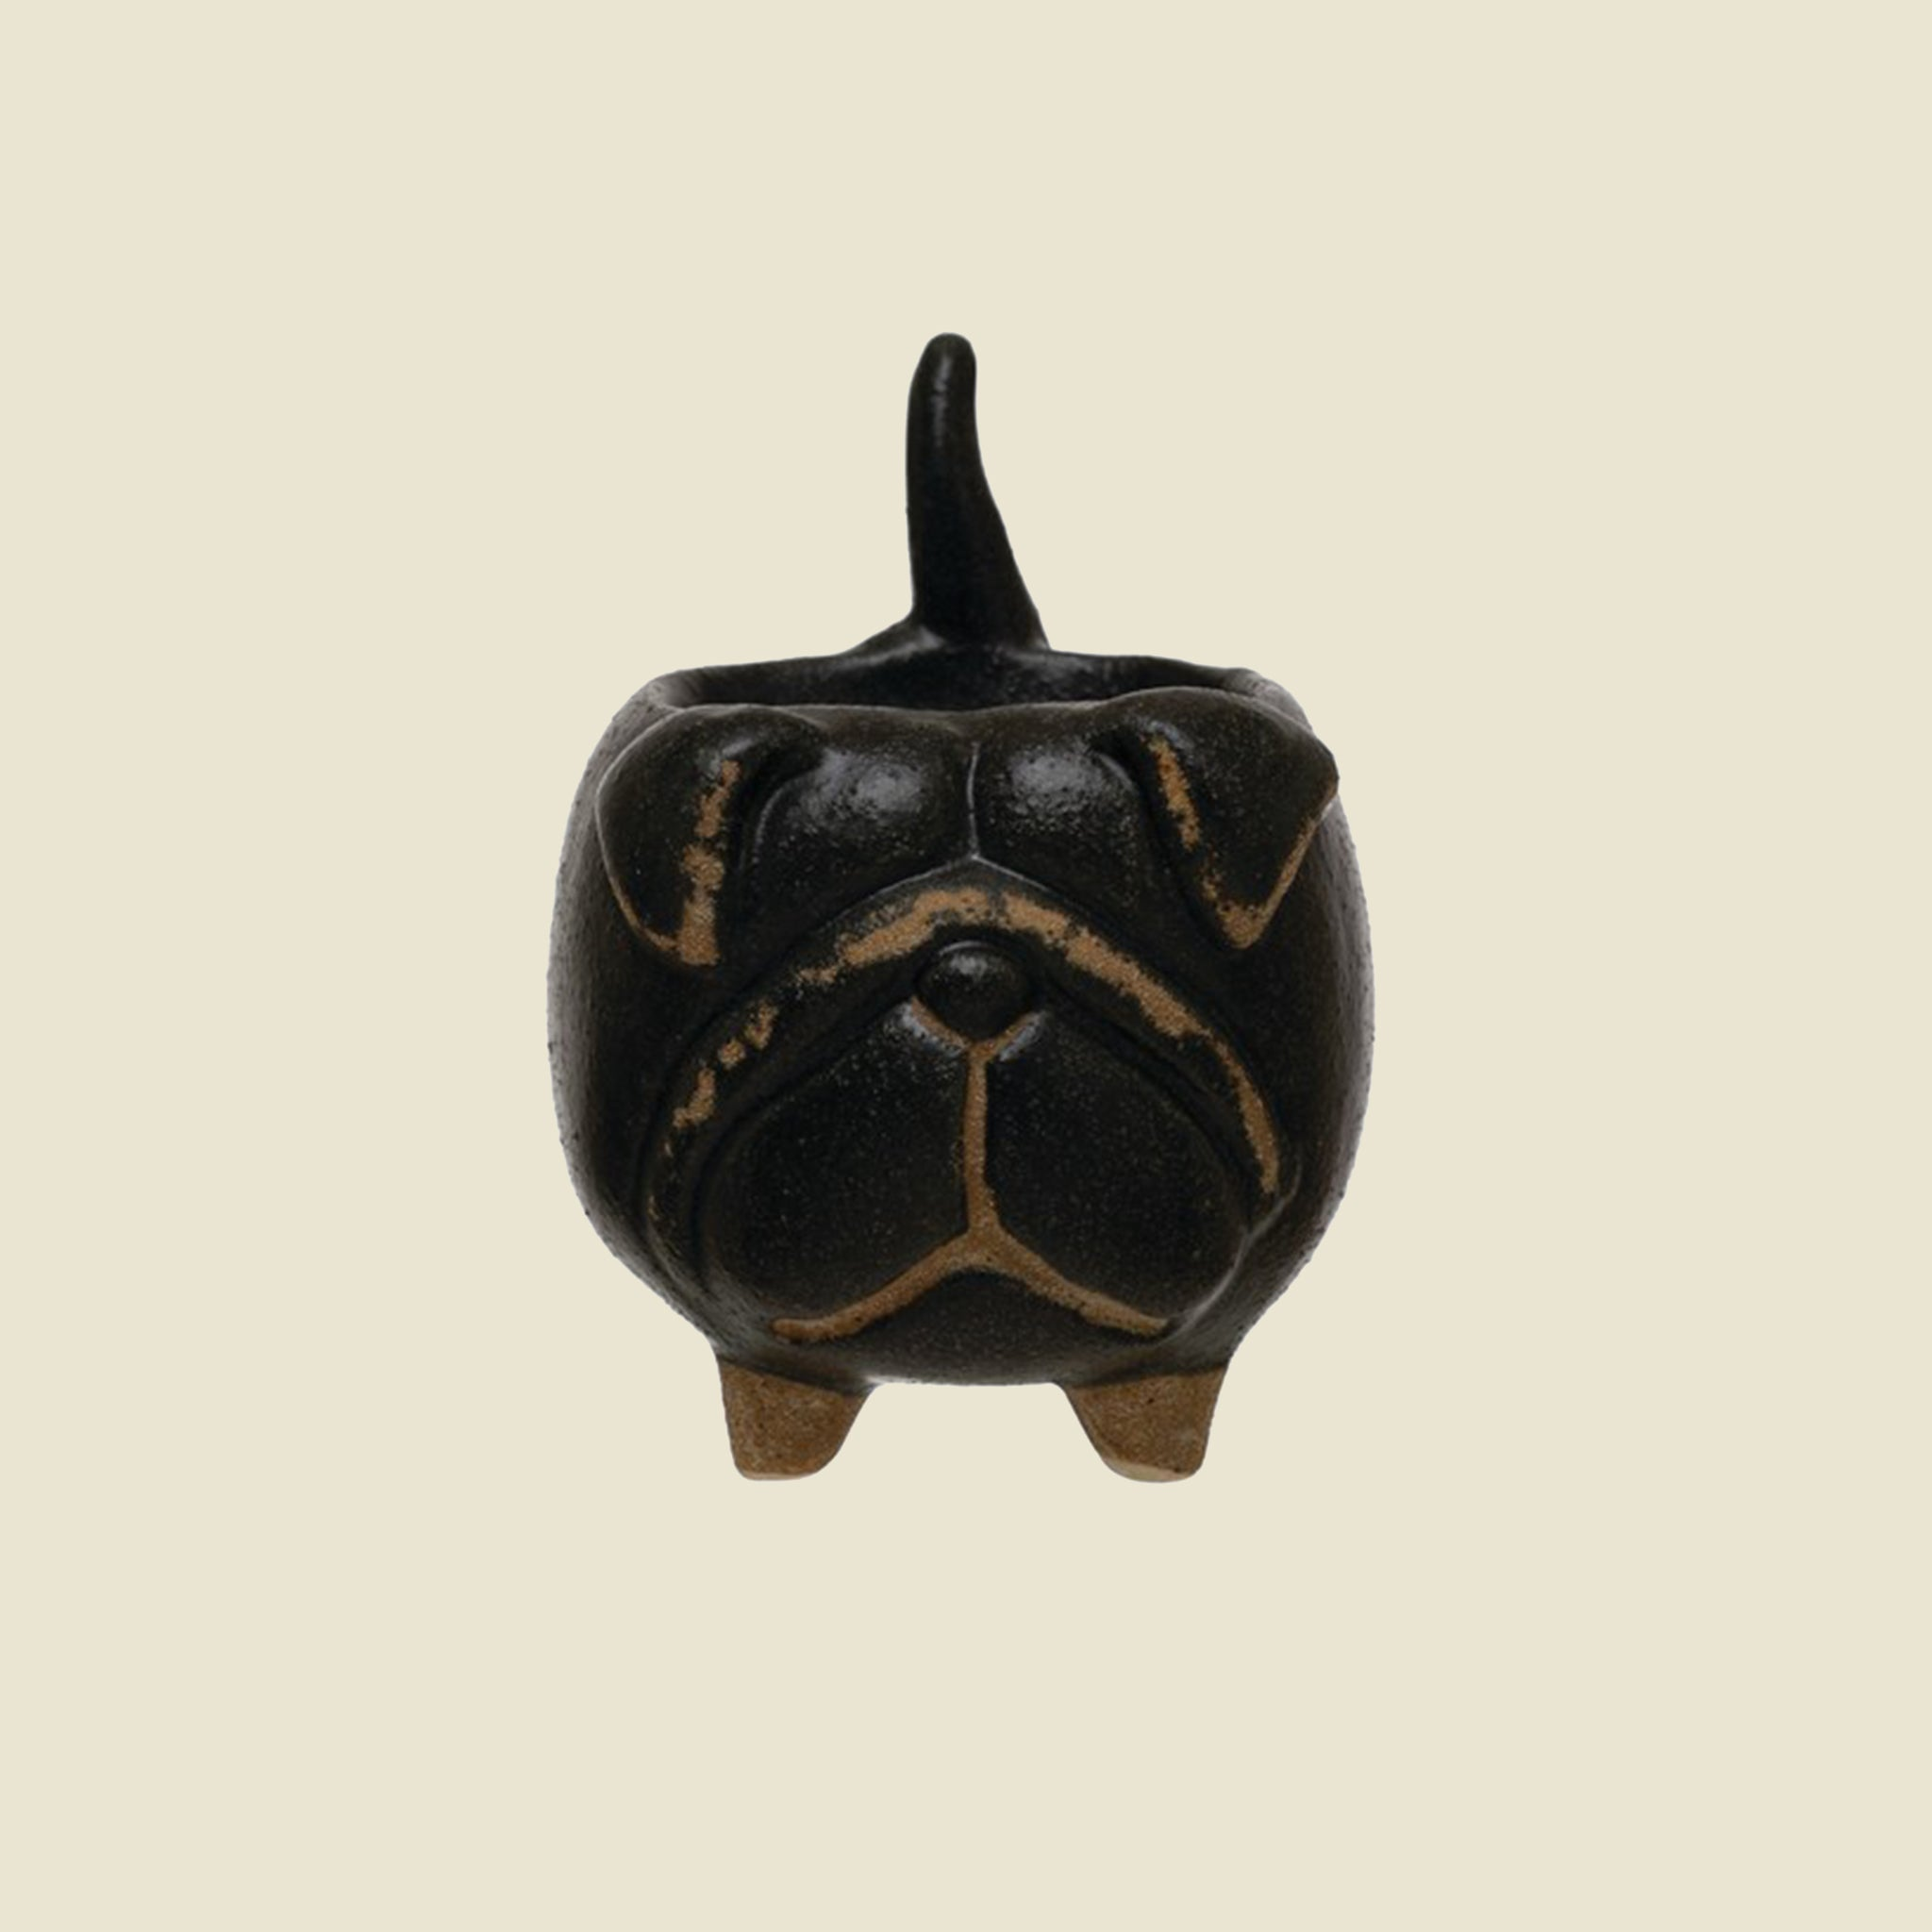 Dog Ring Holder - Blackbird General Store